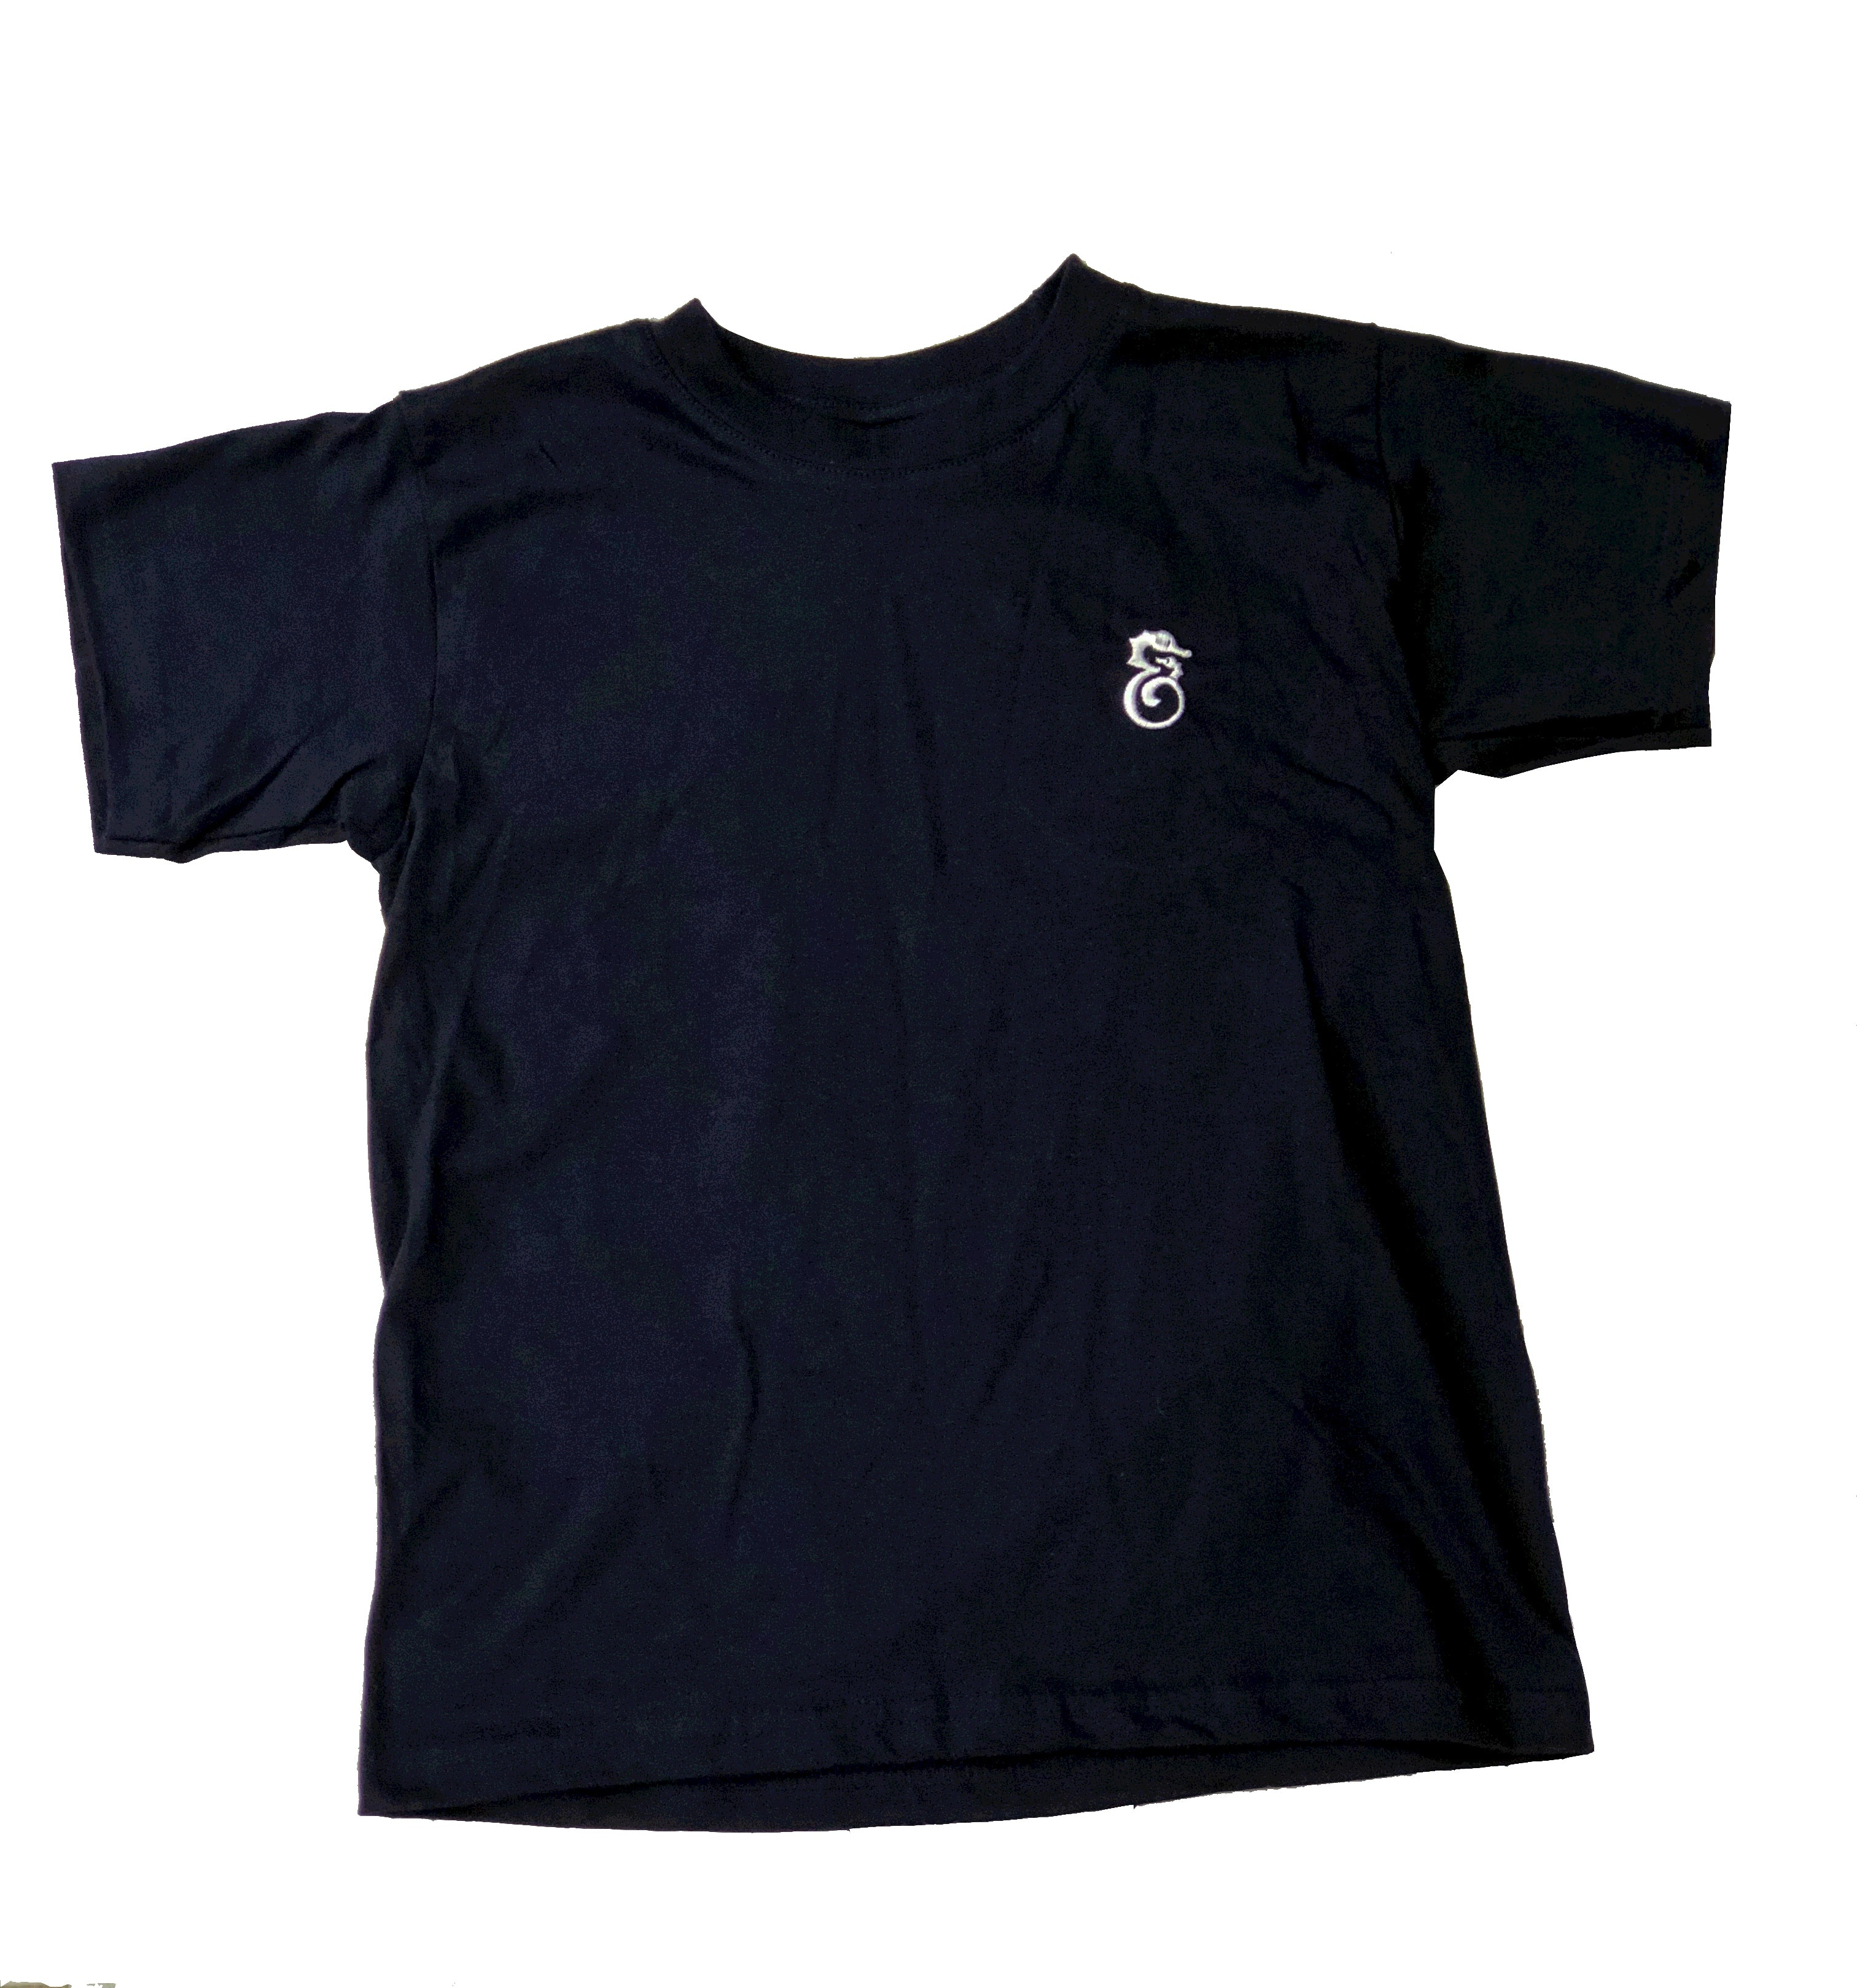 Children's Robert & Son Navy Cotton T-Shirt